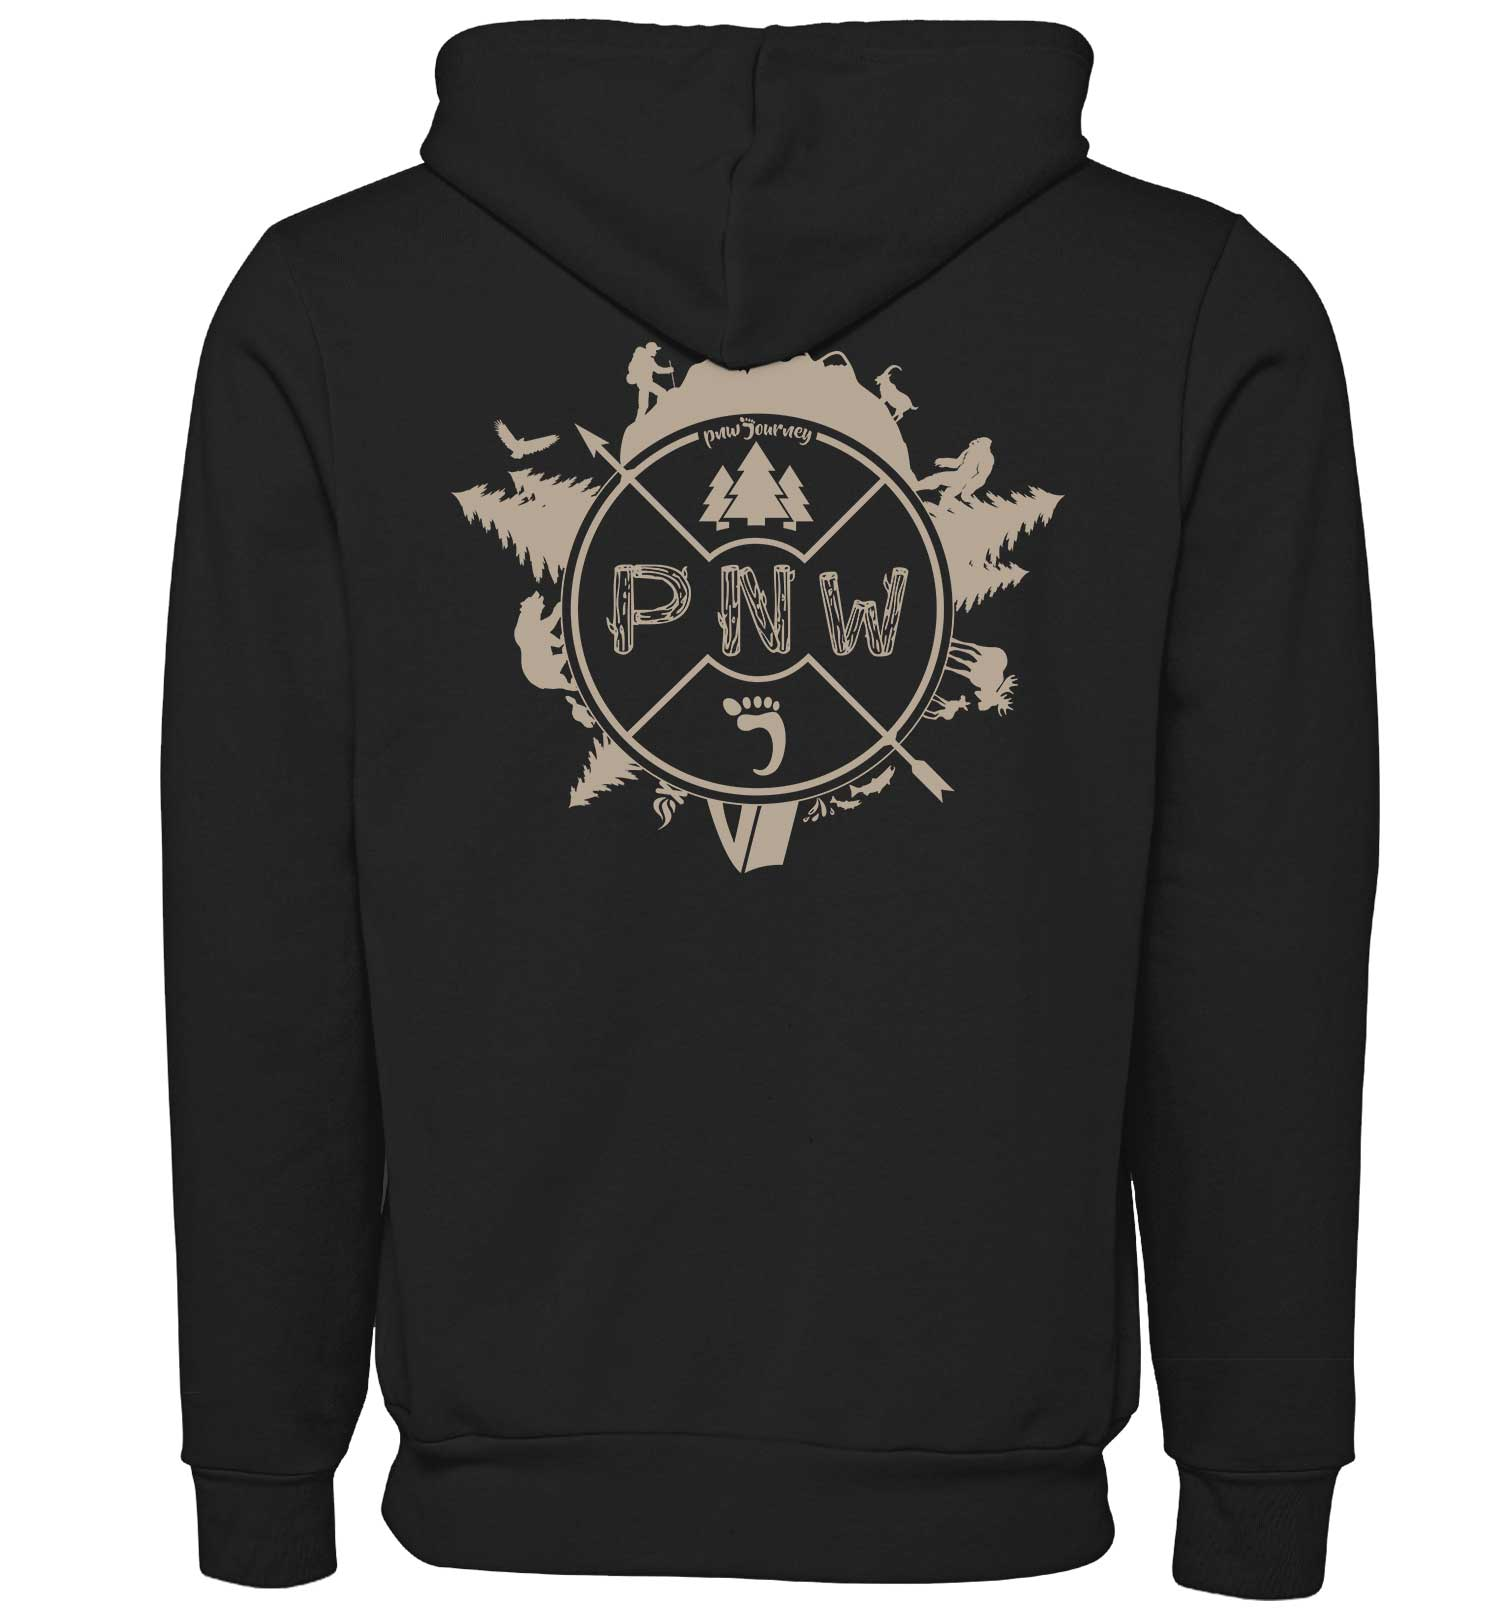 Around the PNW - Sweatshirt - Zip Hoodie - Black - Combined - PNW Journey